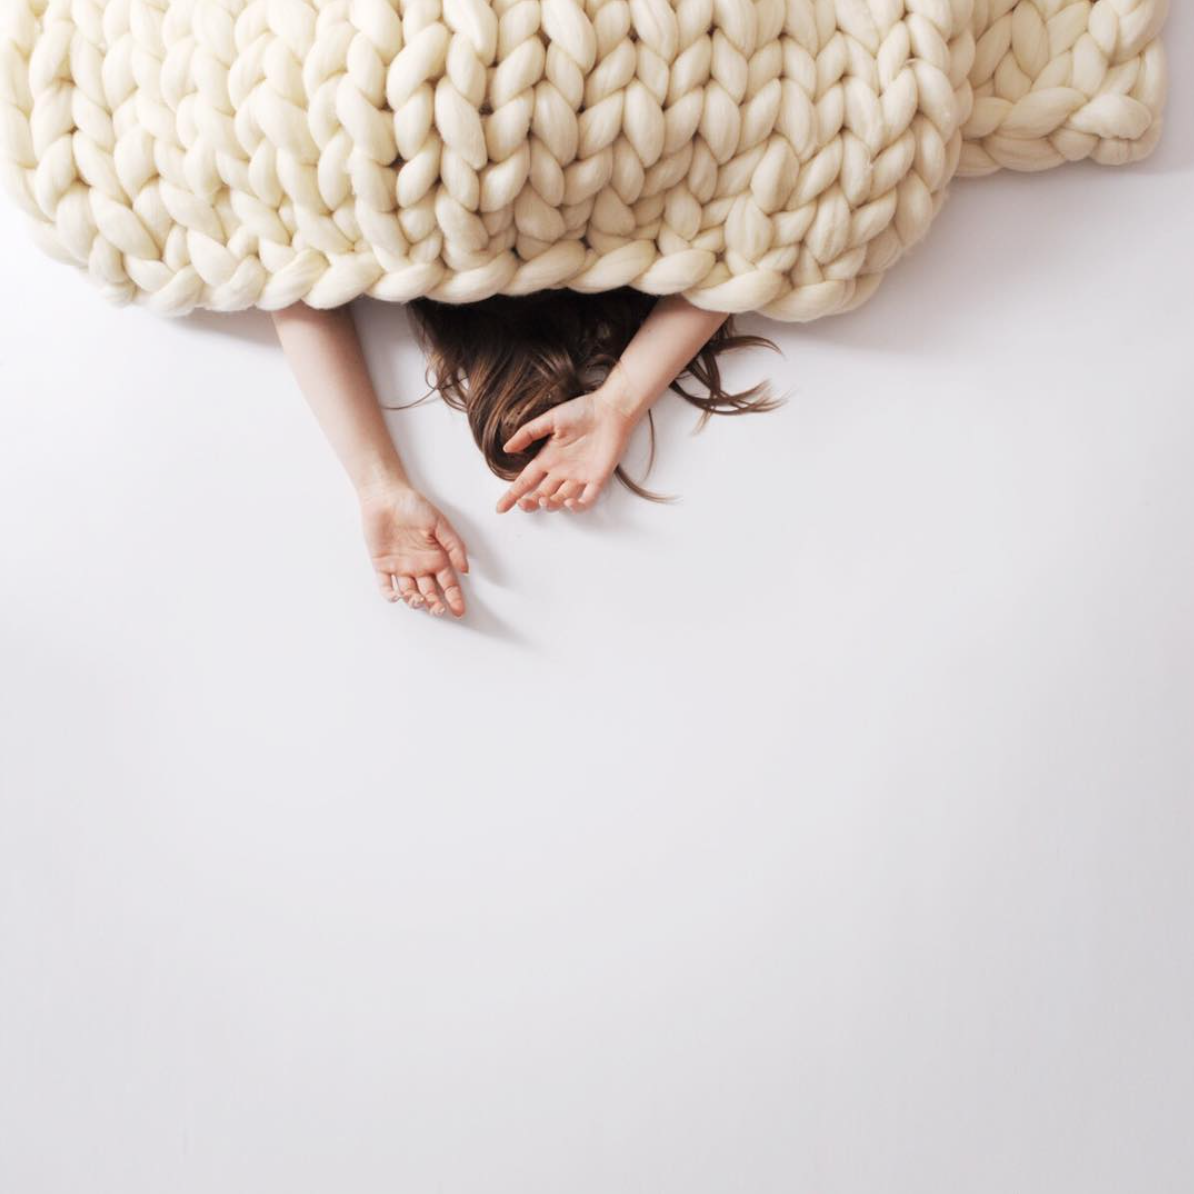 arm-knitting-plaid-giy-blog-couverture-tricot-bras-z